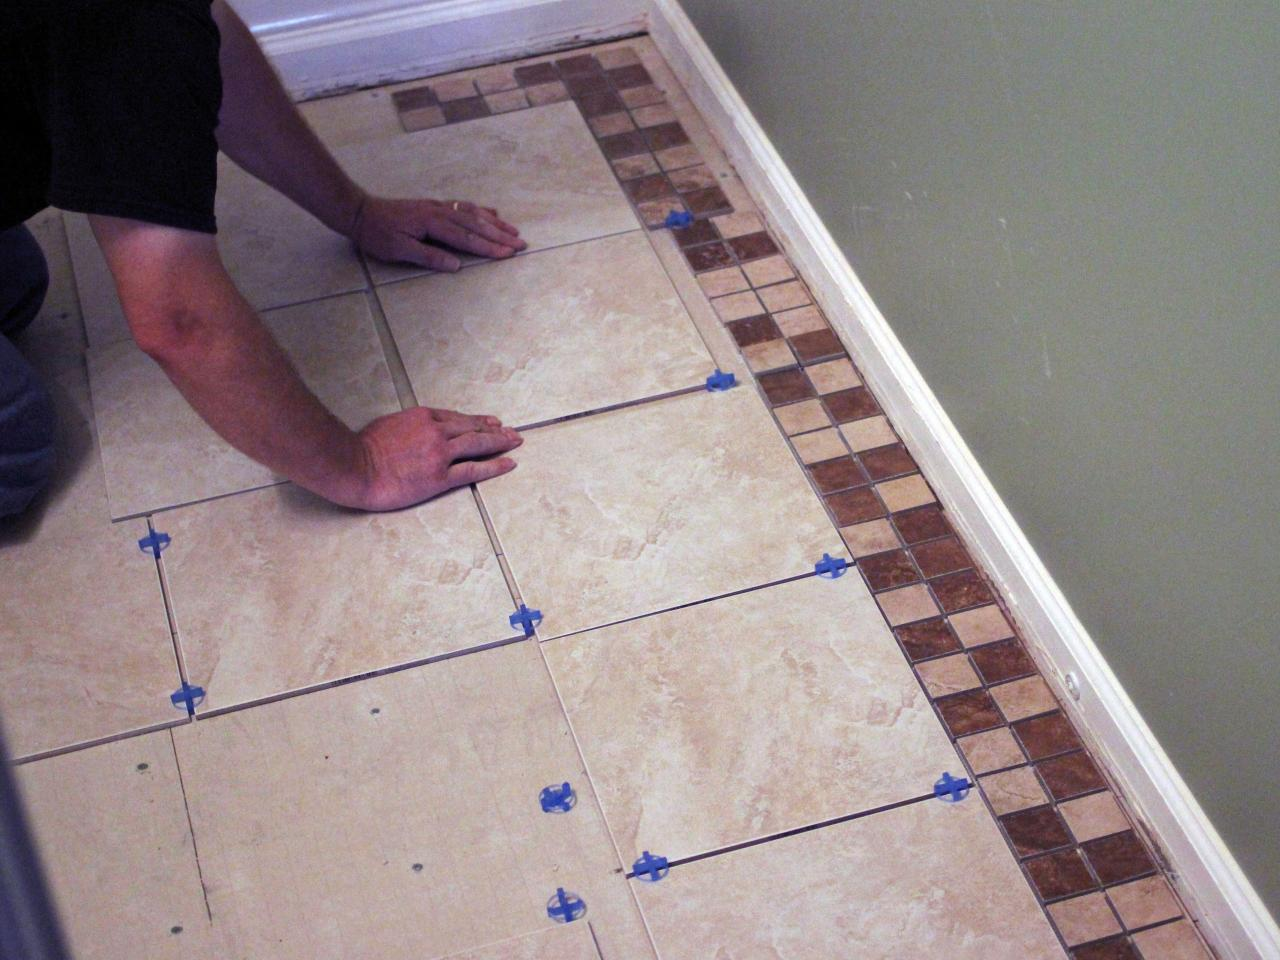 How To Install Bathroom Floor Tile Howtos DIY - Easiest floor tile to install